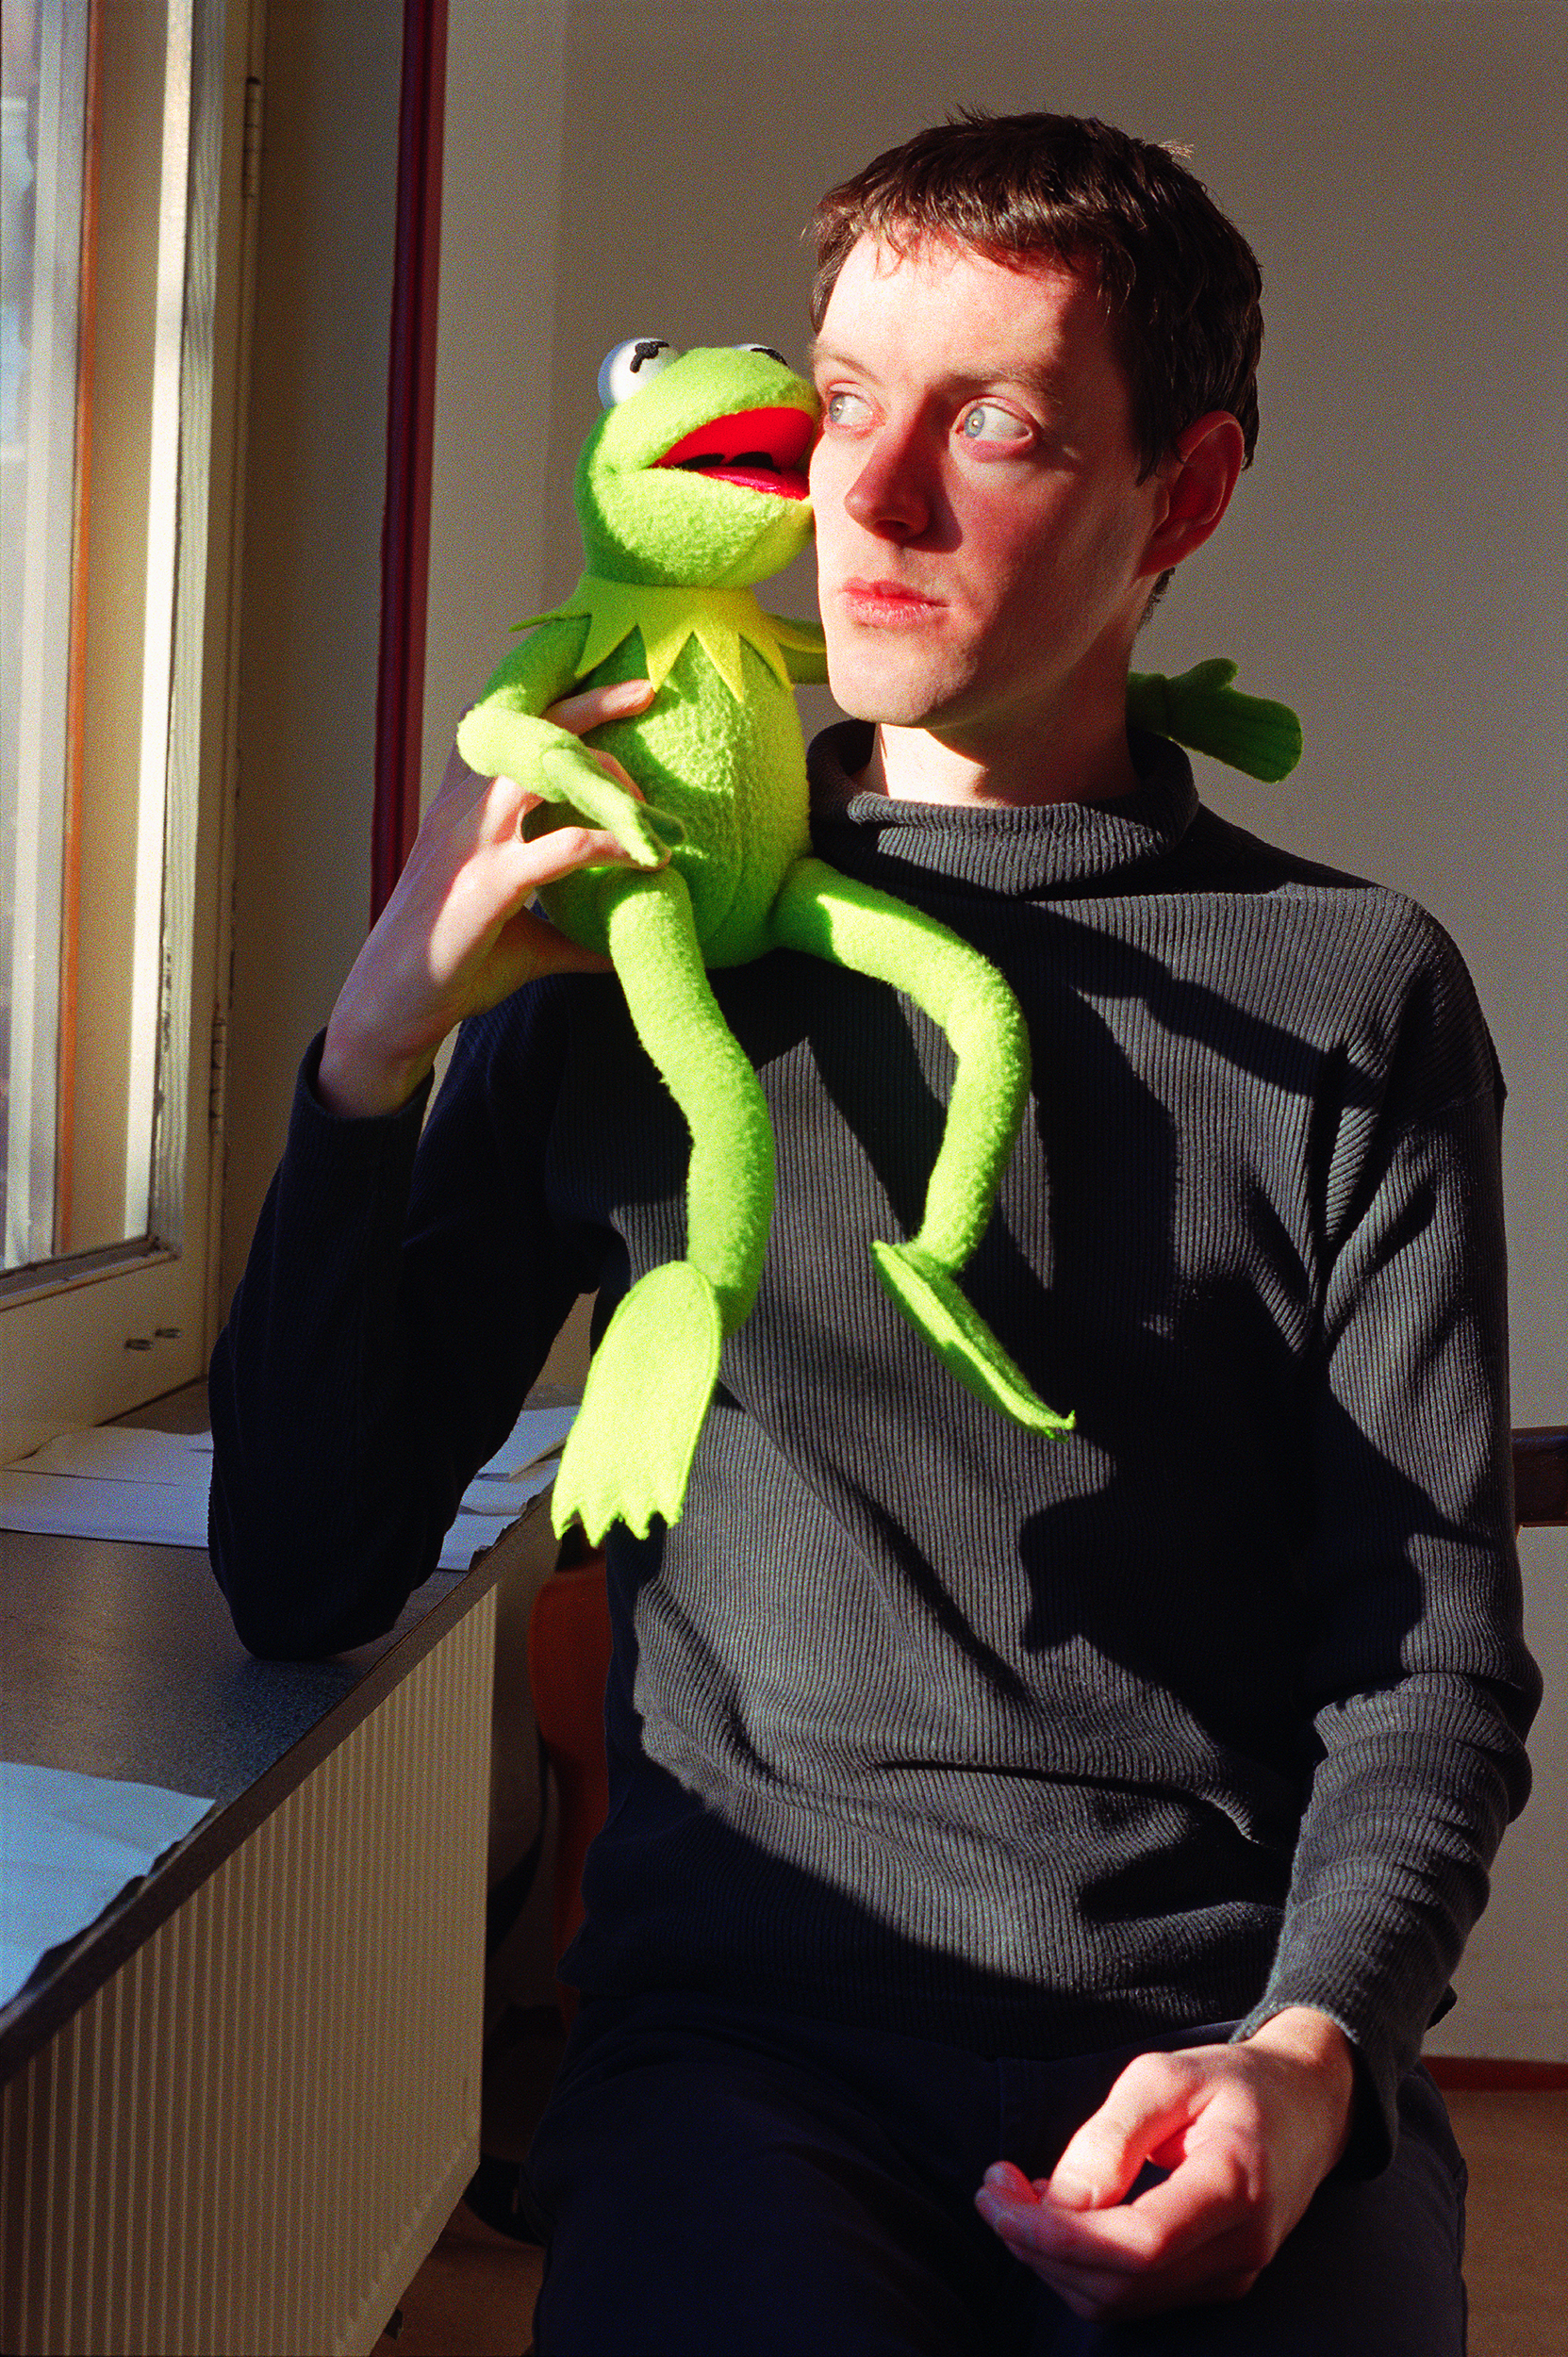 Self-portrait with Kermit the Frog, photograph by Wouter van Riessen